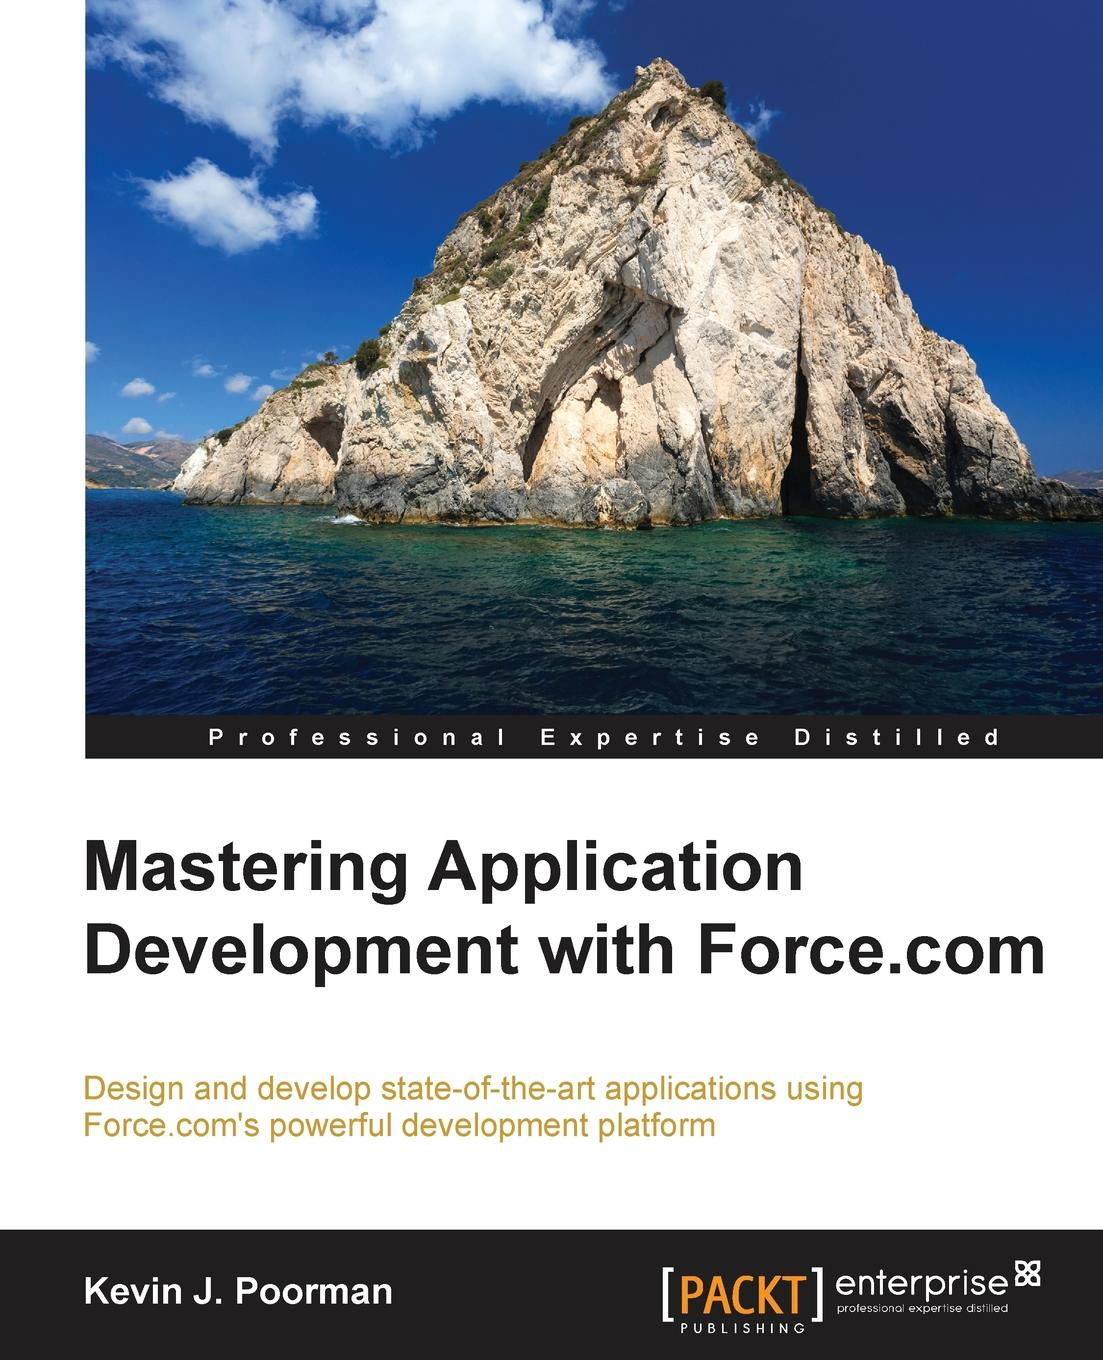 Kevin J. Poorman Mastering Application Development with Force.com philip klauzinski john moore mastering javascript single page application development